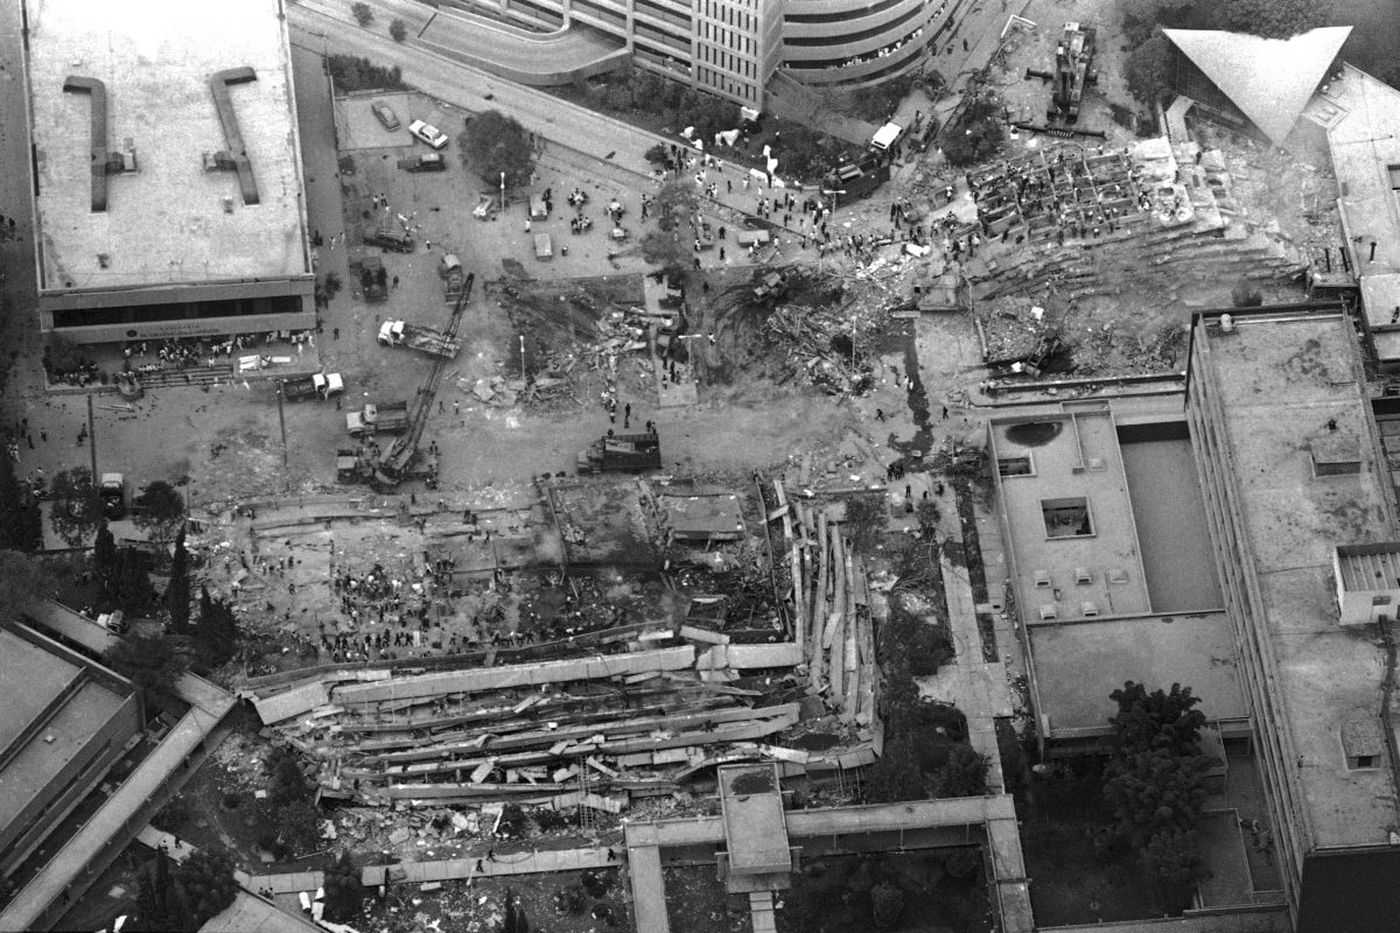 After 32 years, the Mexico earthquake is a sad reminder | Perspective